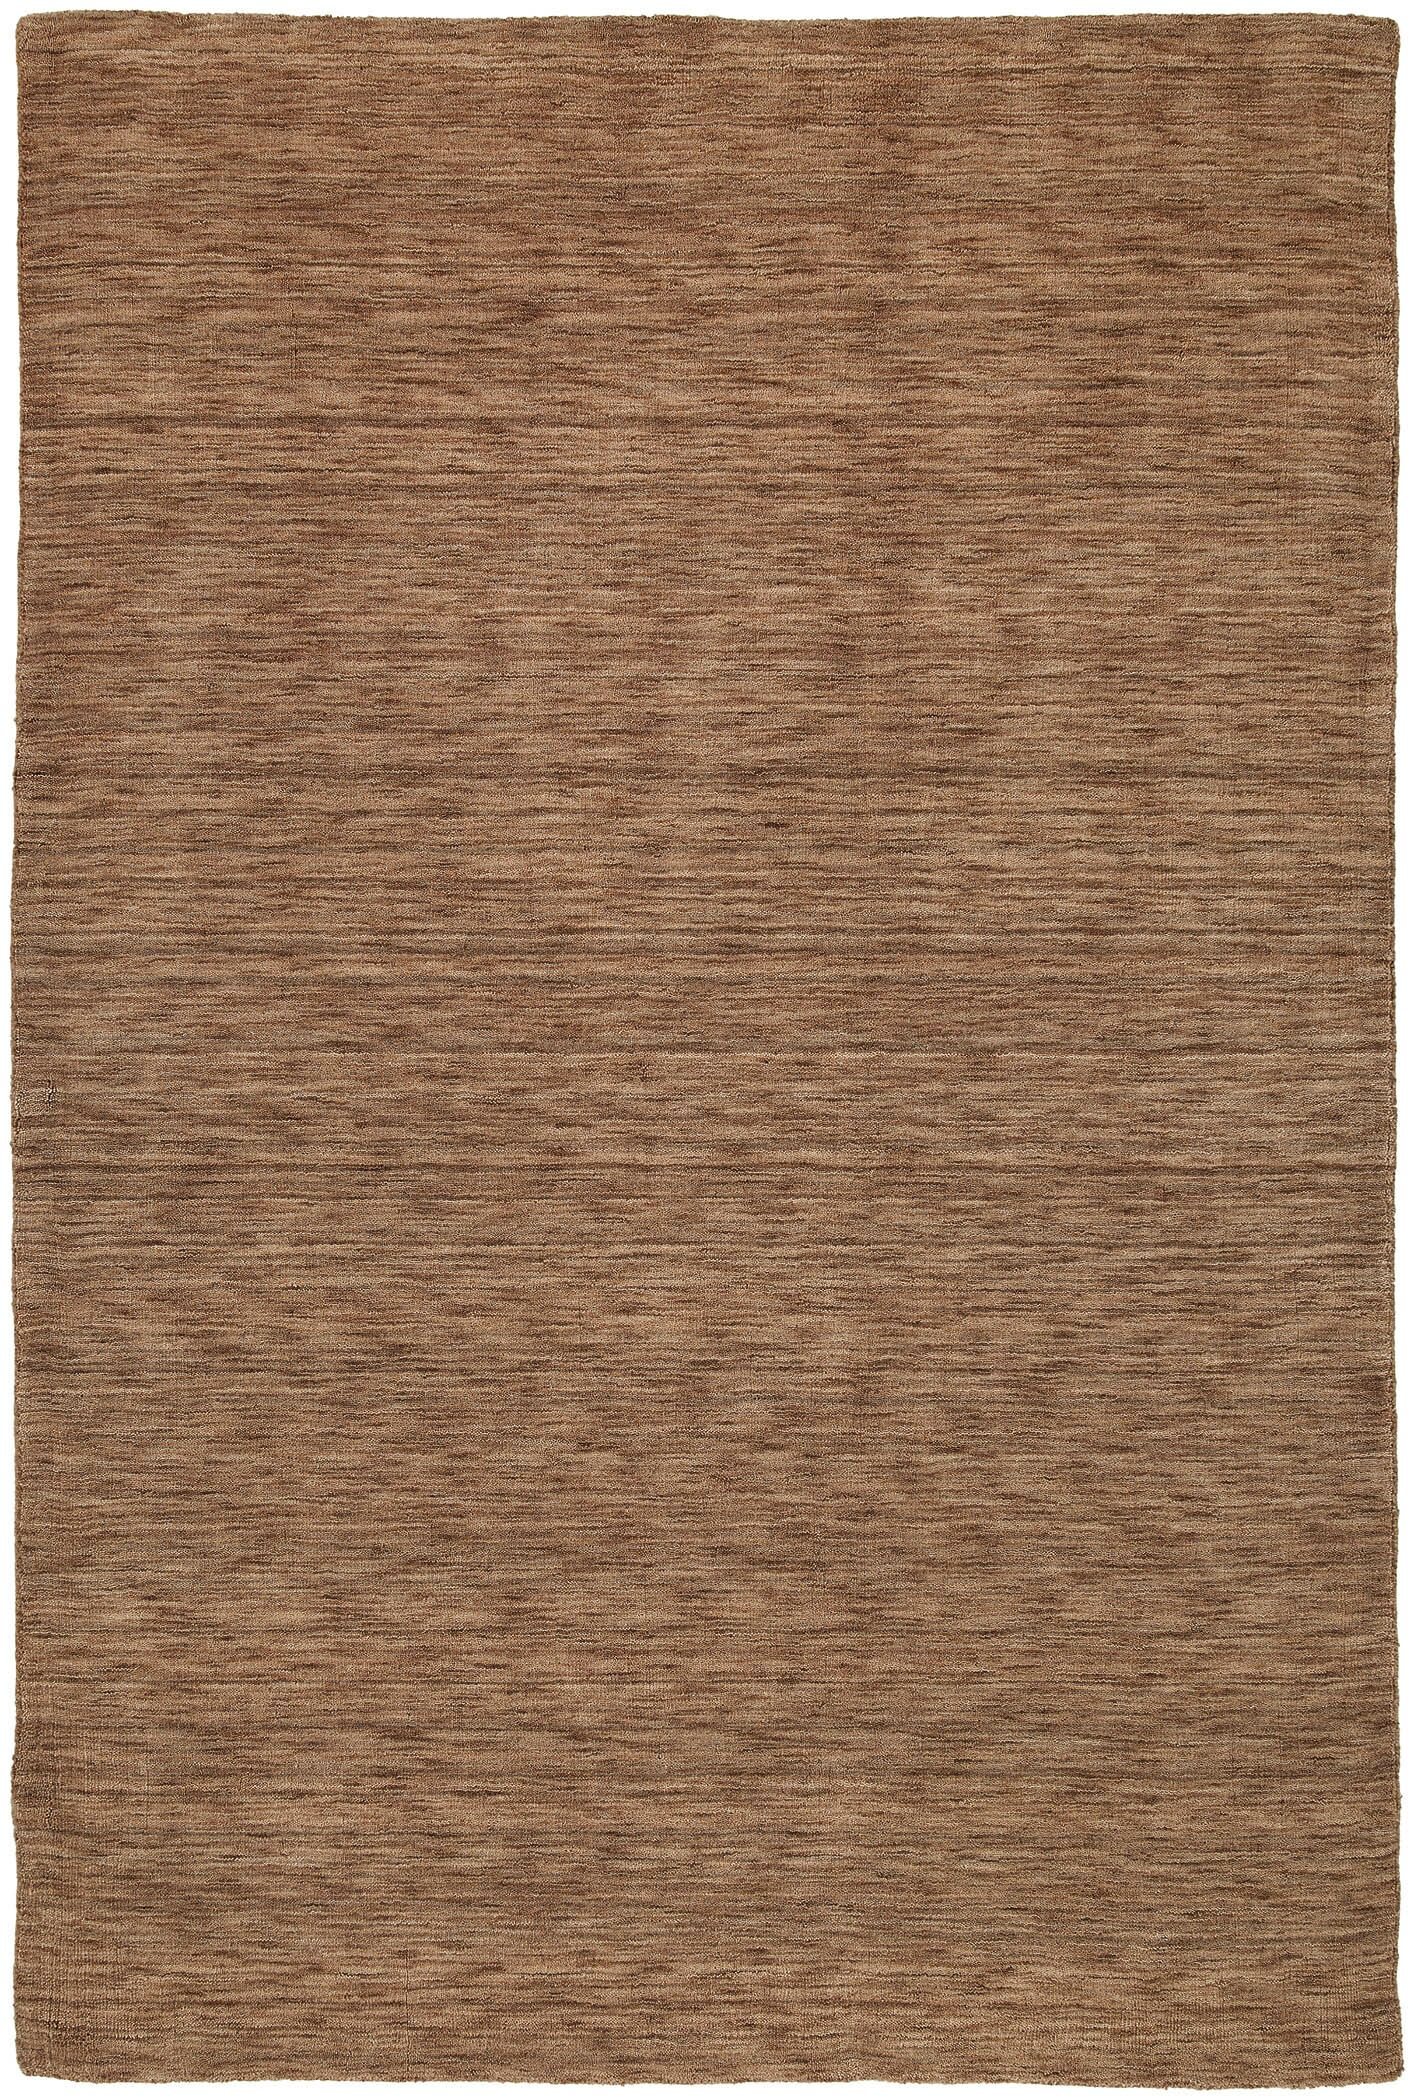 Mccabe Hand Woven Wool Brown Area Rug Rug Size: Rectangle 3' x 5'